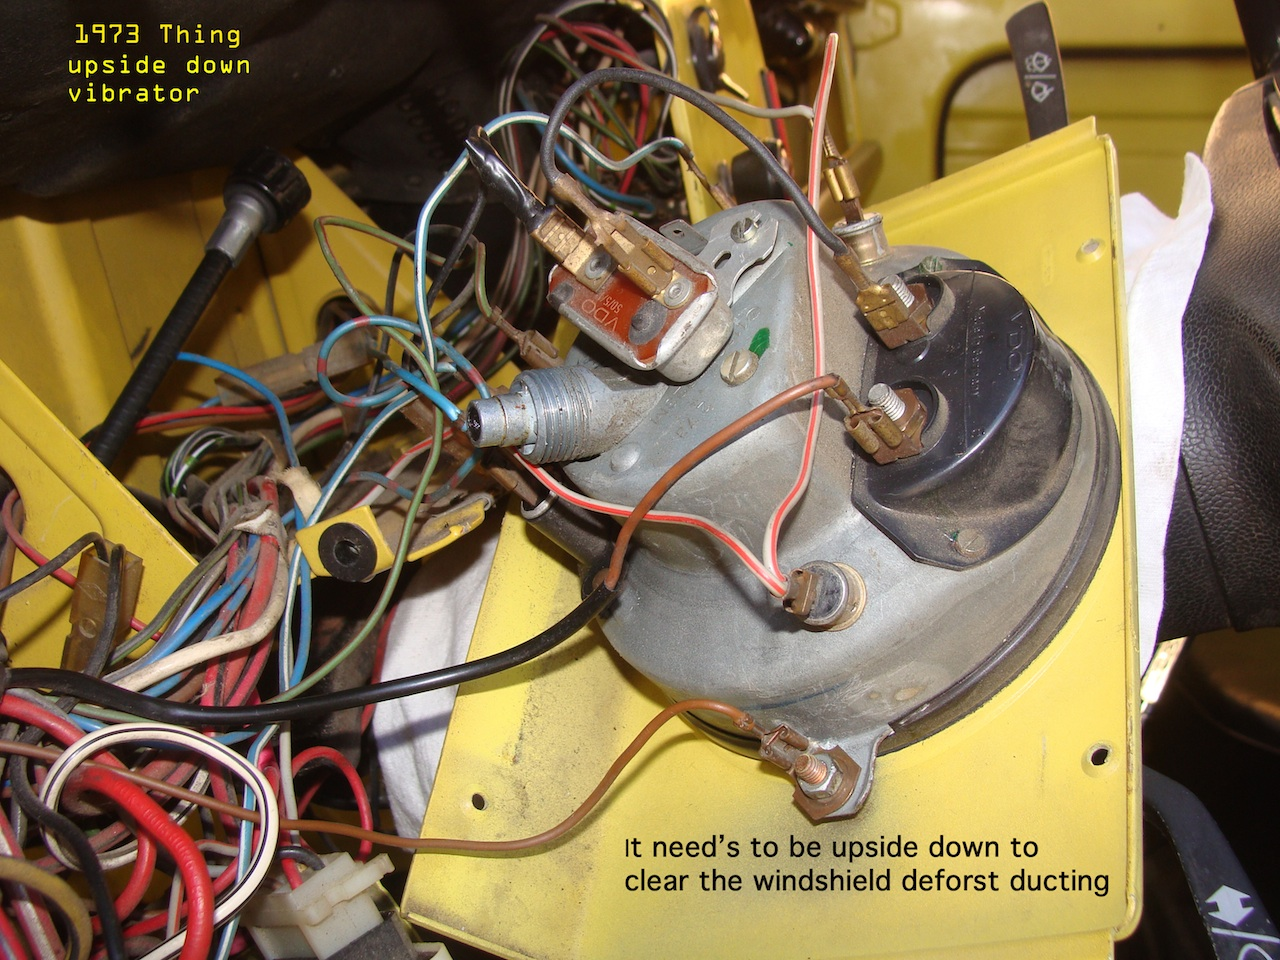 hight resolution of thesamba com thing type 181 view topic broken fuel gauge 1974 vw beetle wiring image may